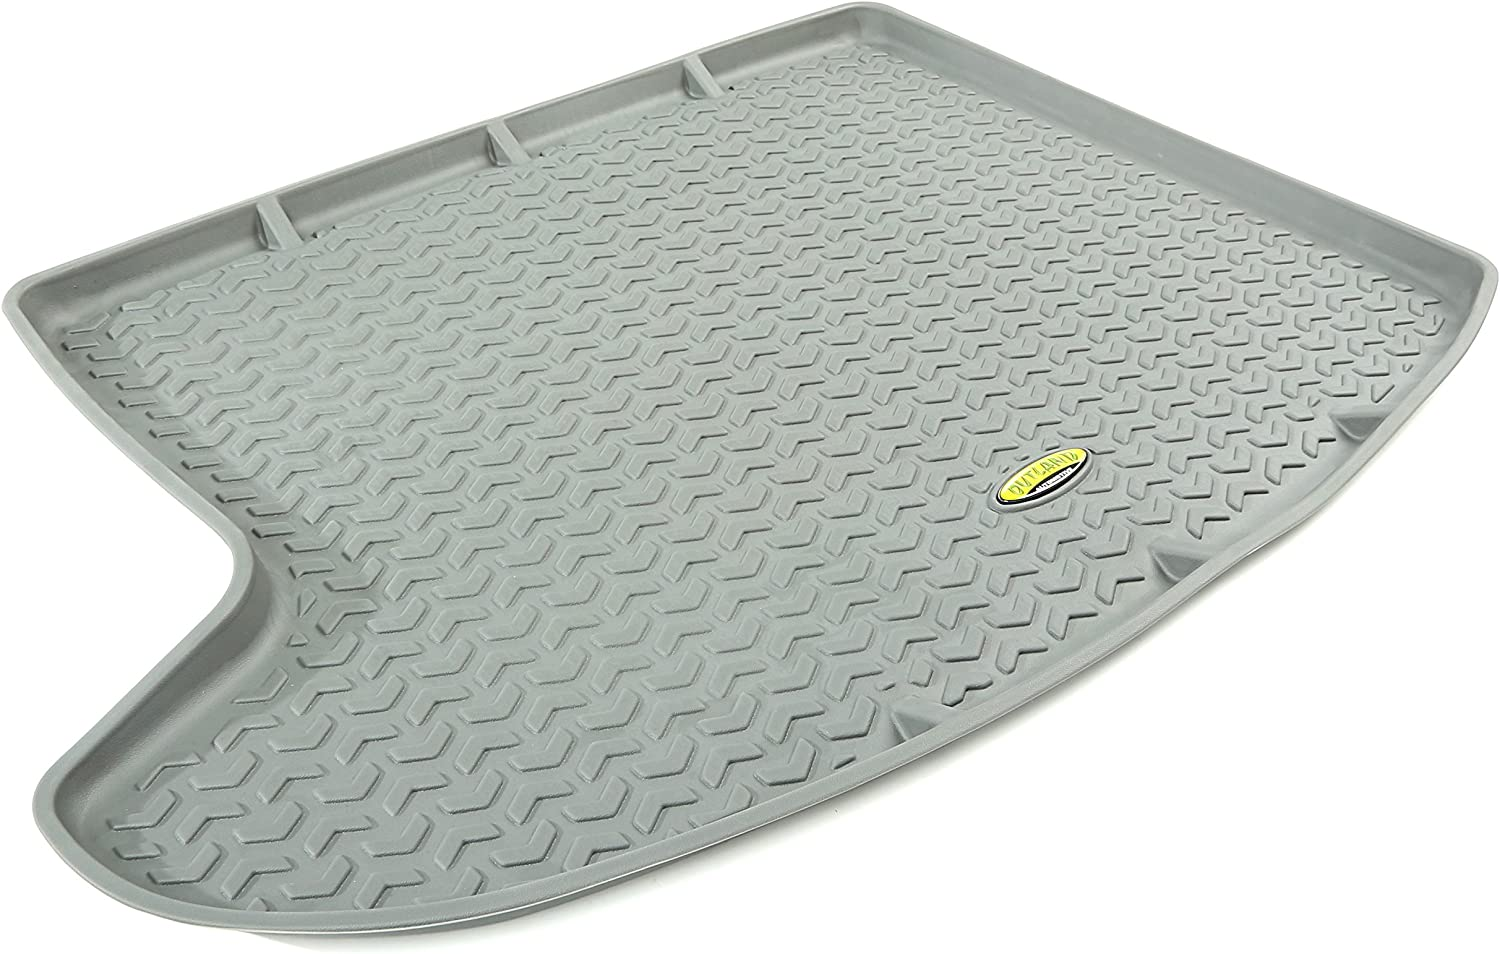 Outland 391398827 Tan Front Rear and Cargo Floor Liner Kit For Select Jeep Compass and Patriot Models